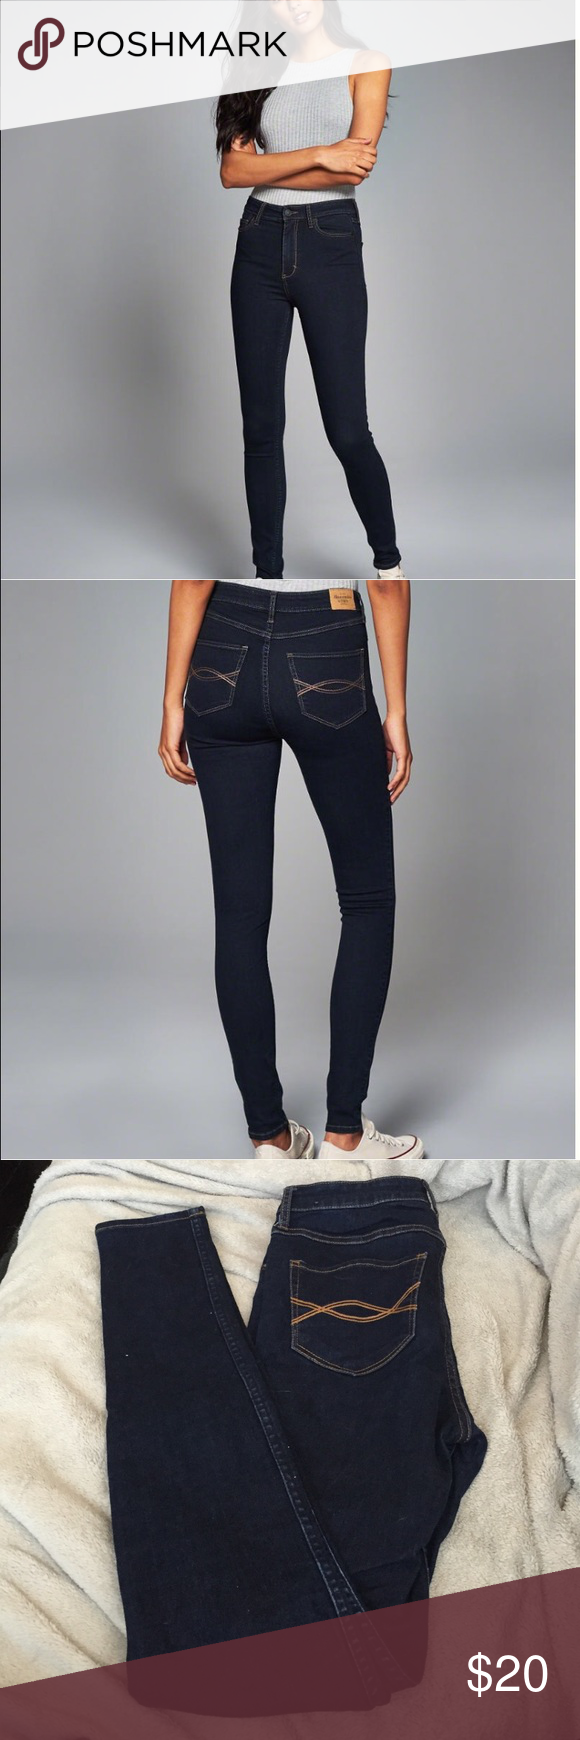 EUC A&F rinse high rise super skinny sz 4long Great condition! Worn a few times always hung to dry never put in the dryer. Sz 4 long high rise super skinnies Abercrombie & Fitch Jeans Skinny